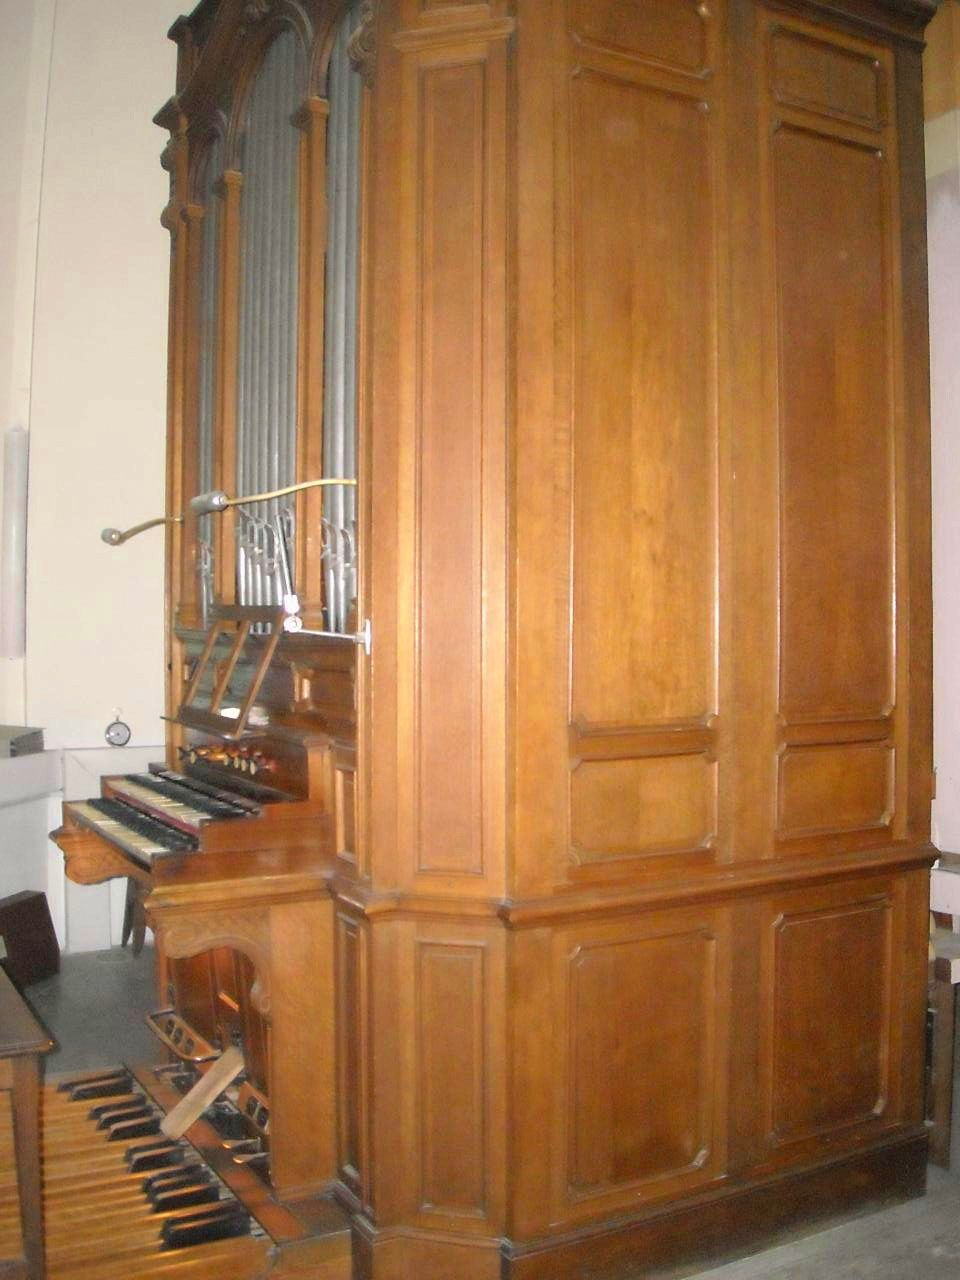 Orgue de salon Mutin 9 jeux